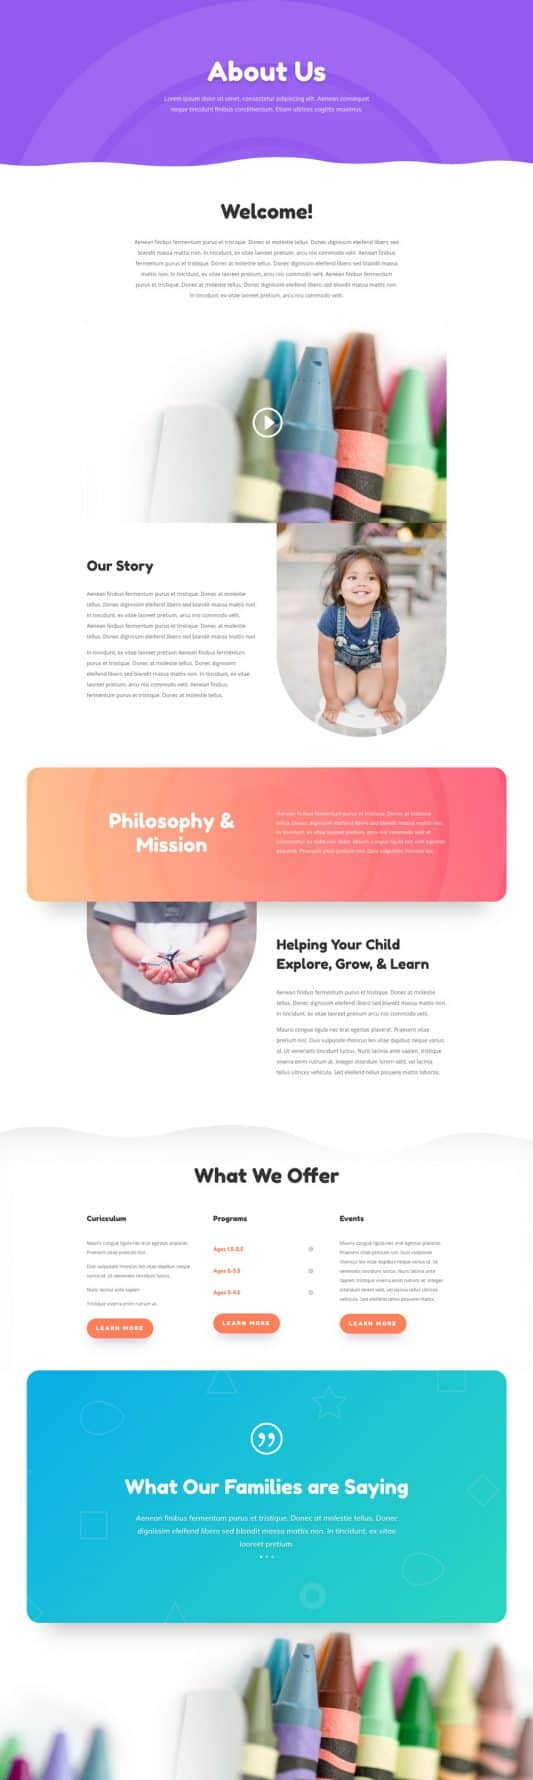 Day Care Web Design 3